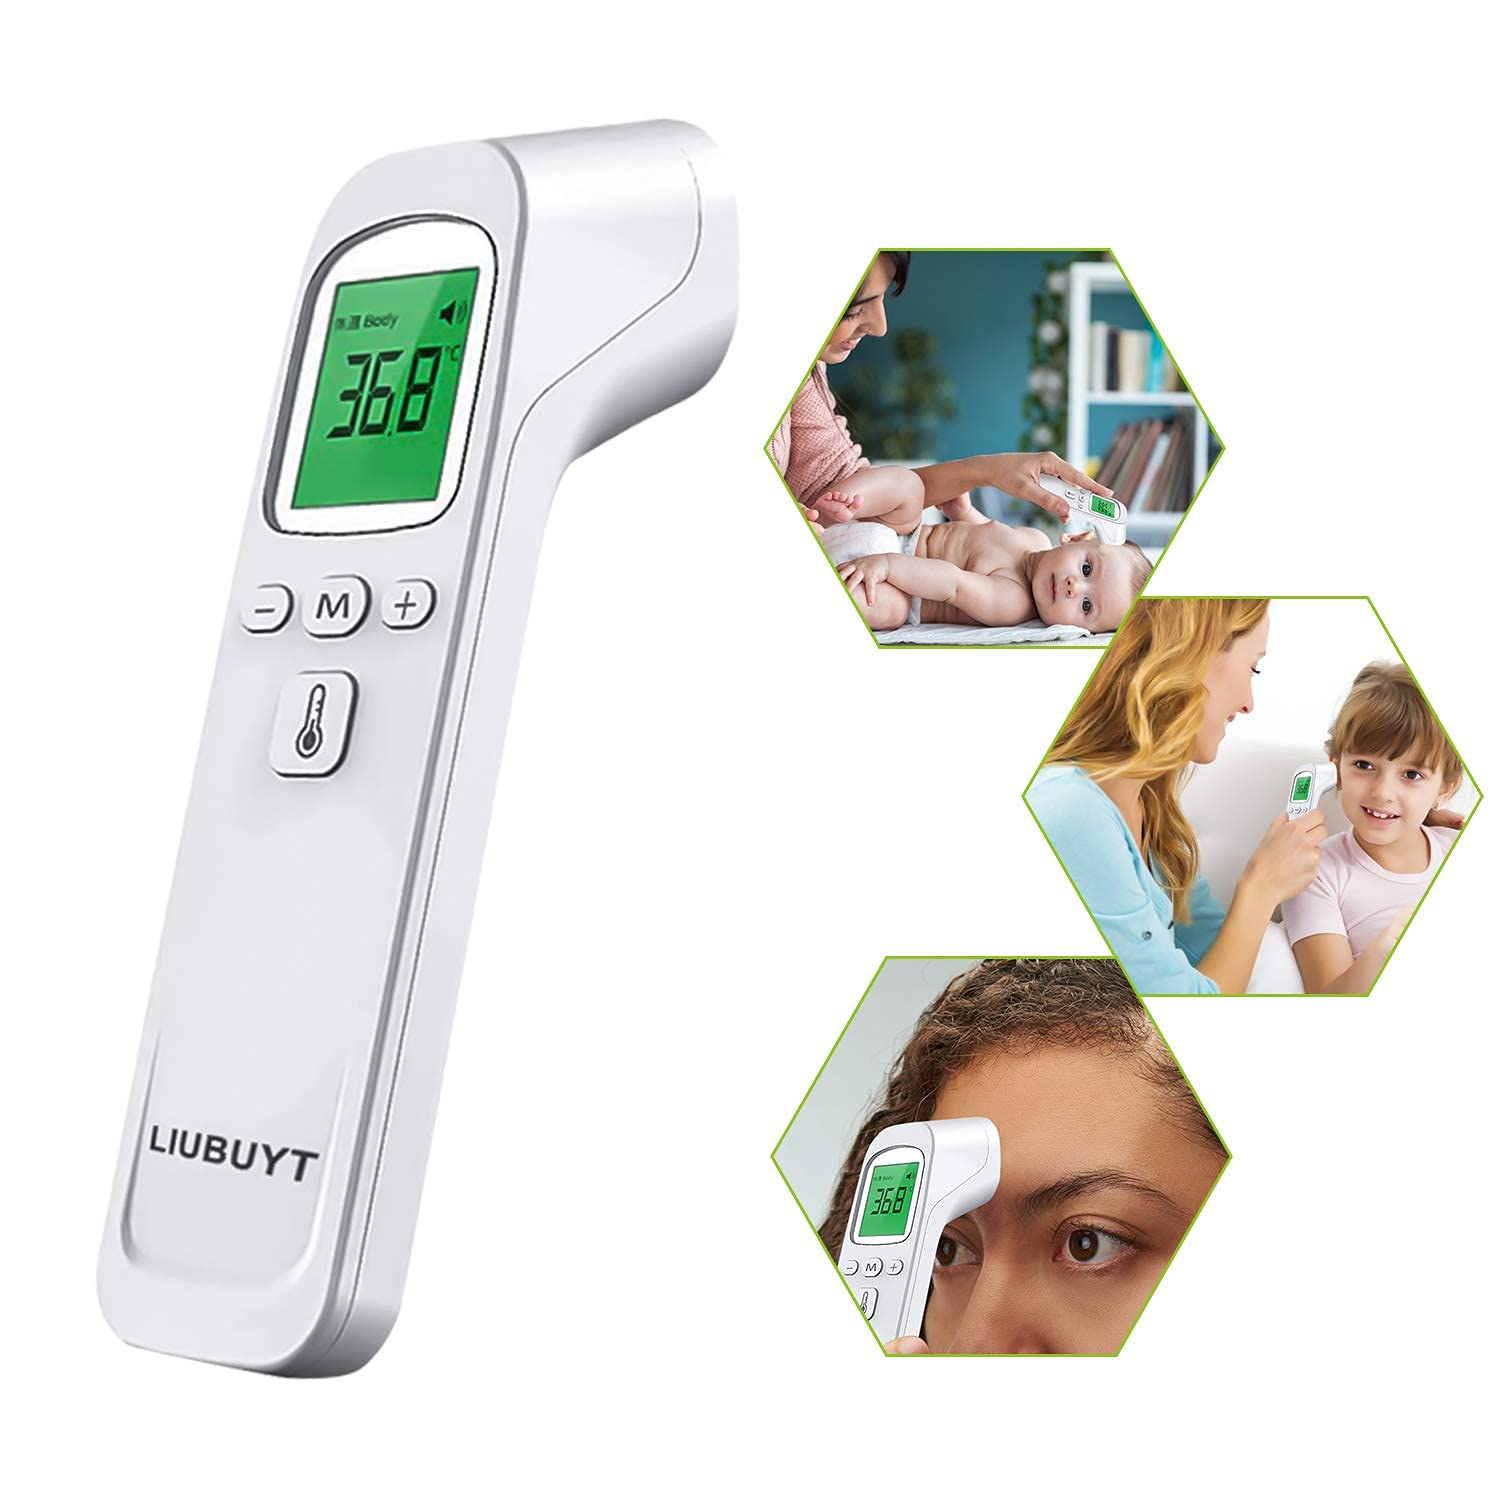 LIUBUYT Forehead Thermometer for Adults Kids Superlatite Contact Max 54% OFF Di Non and